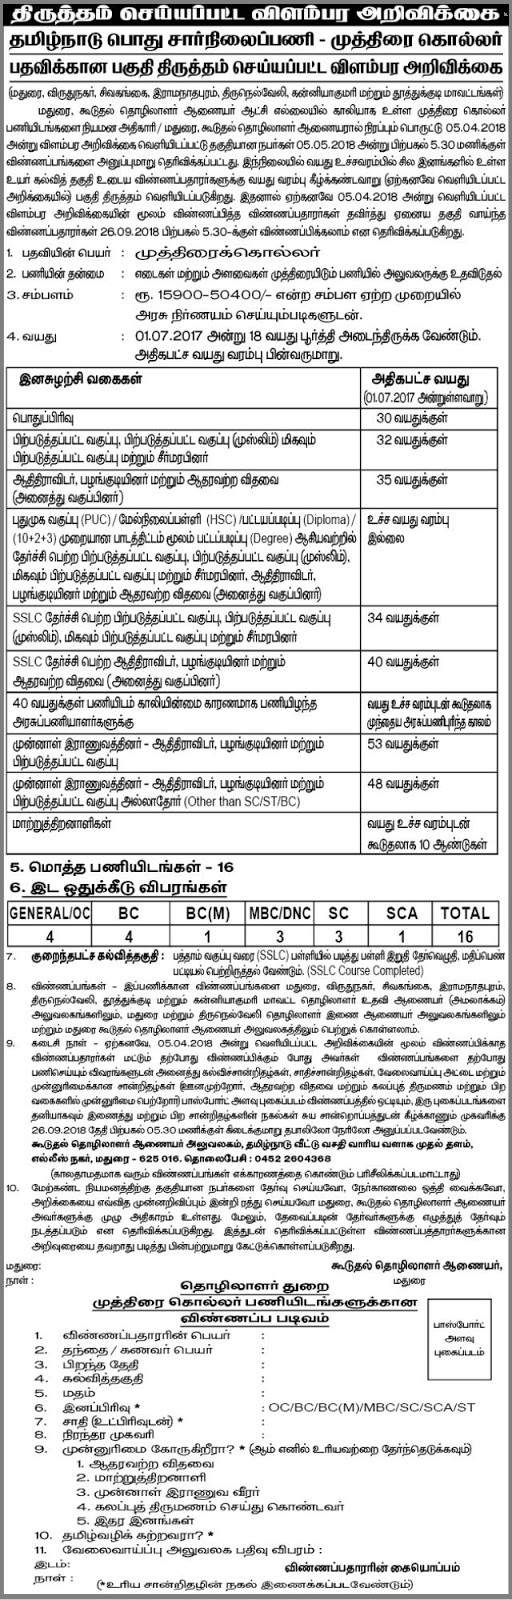 Tamilnadu Labour Department Recruitment 2018 16 Stamping Smith Posts